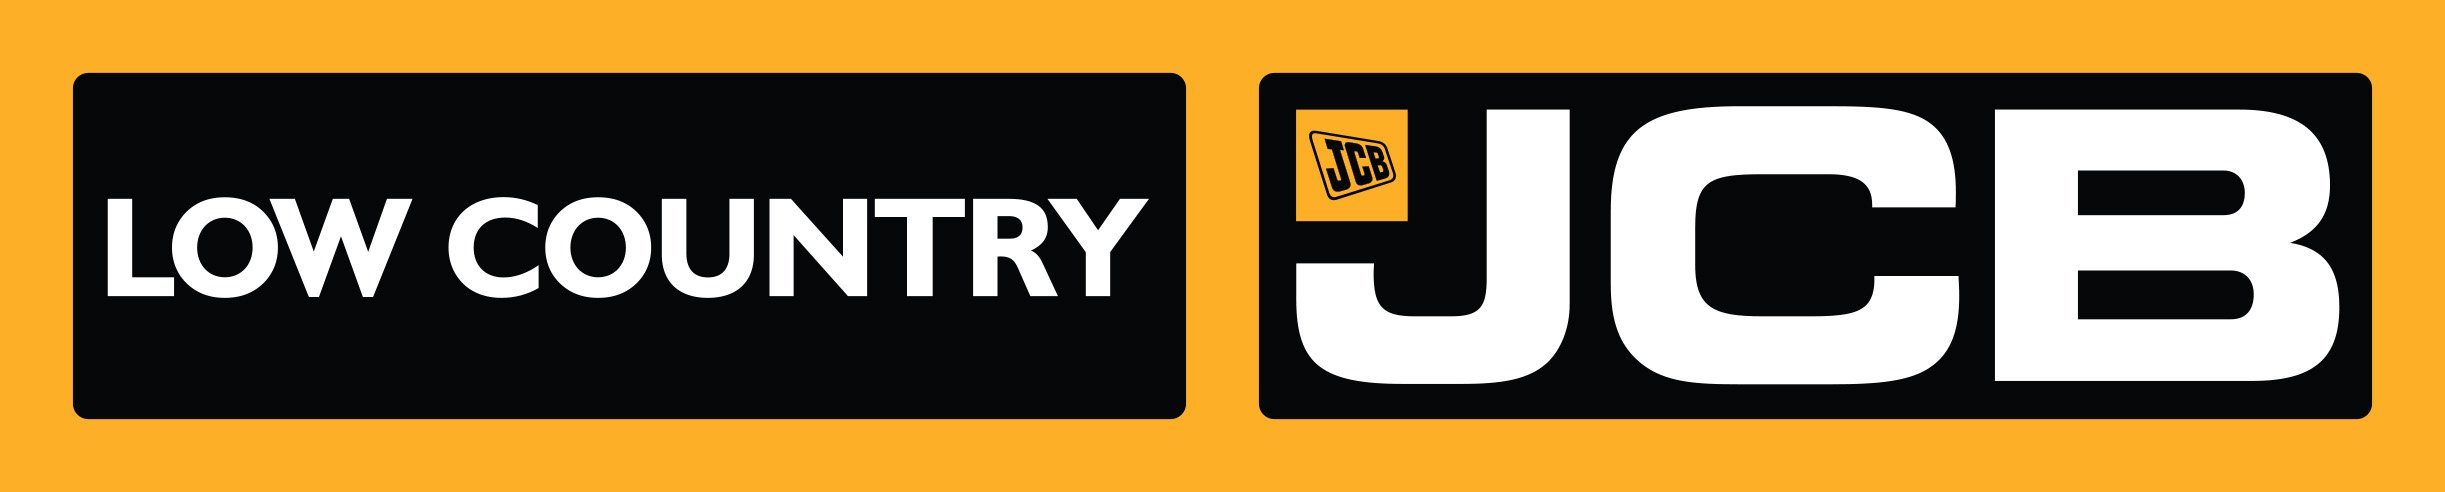 » JCB Showroom